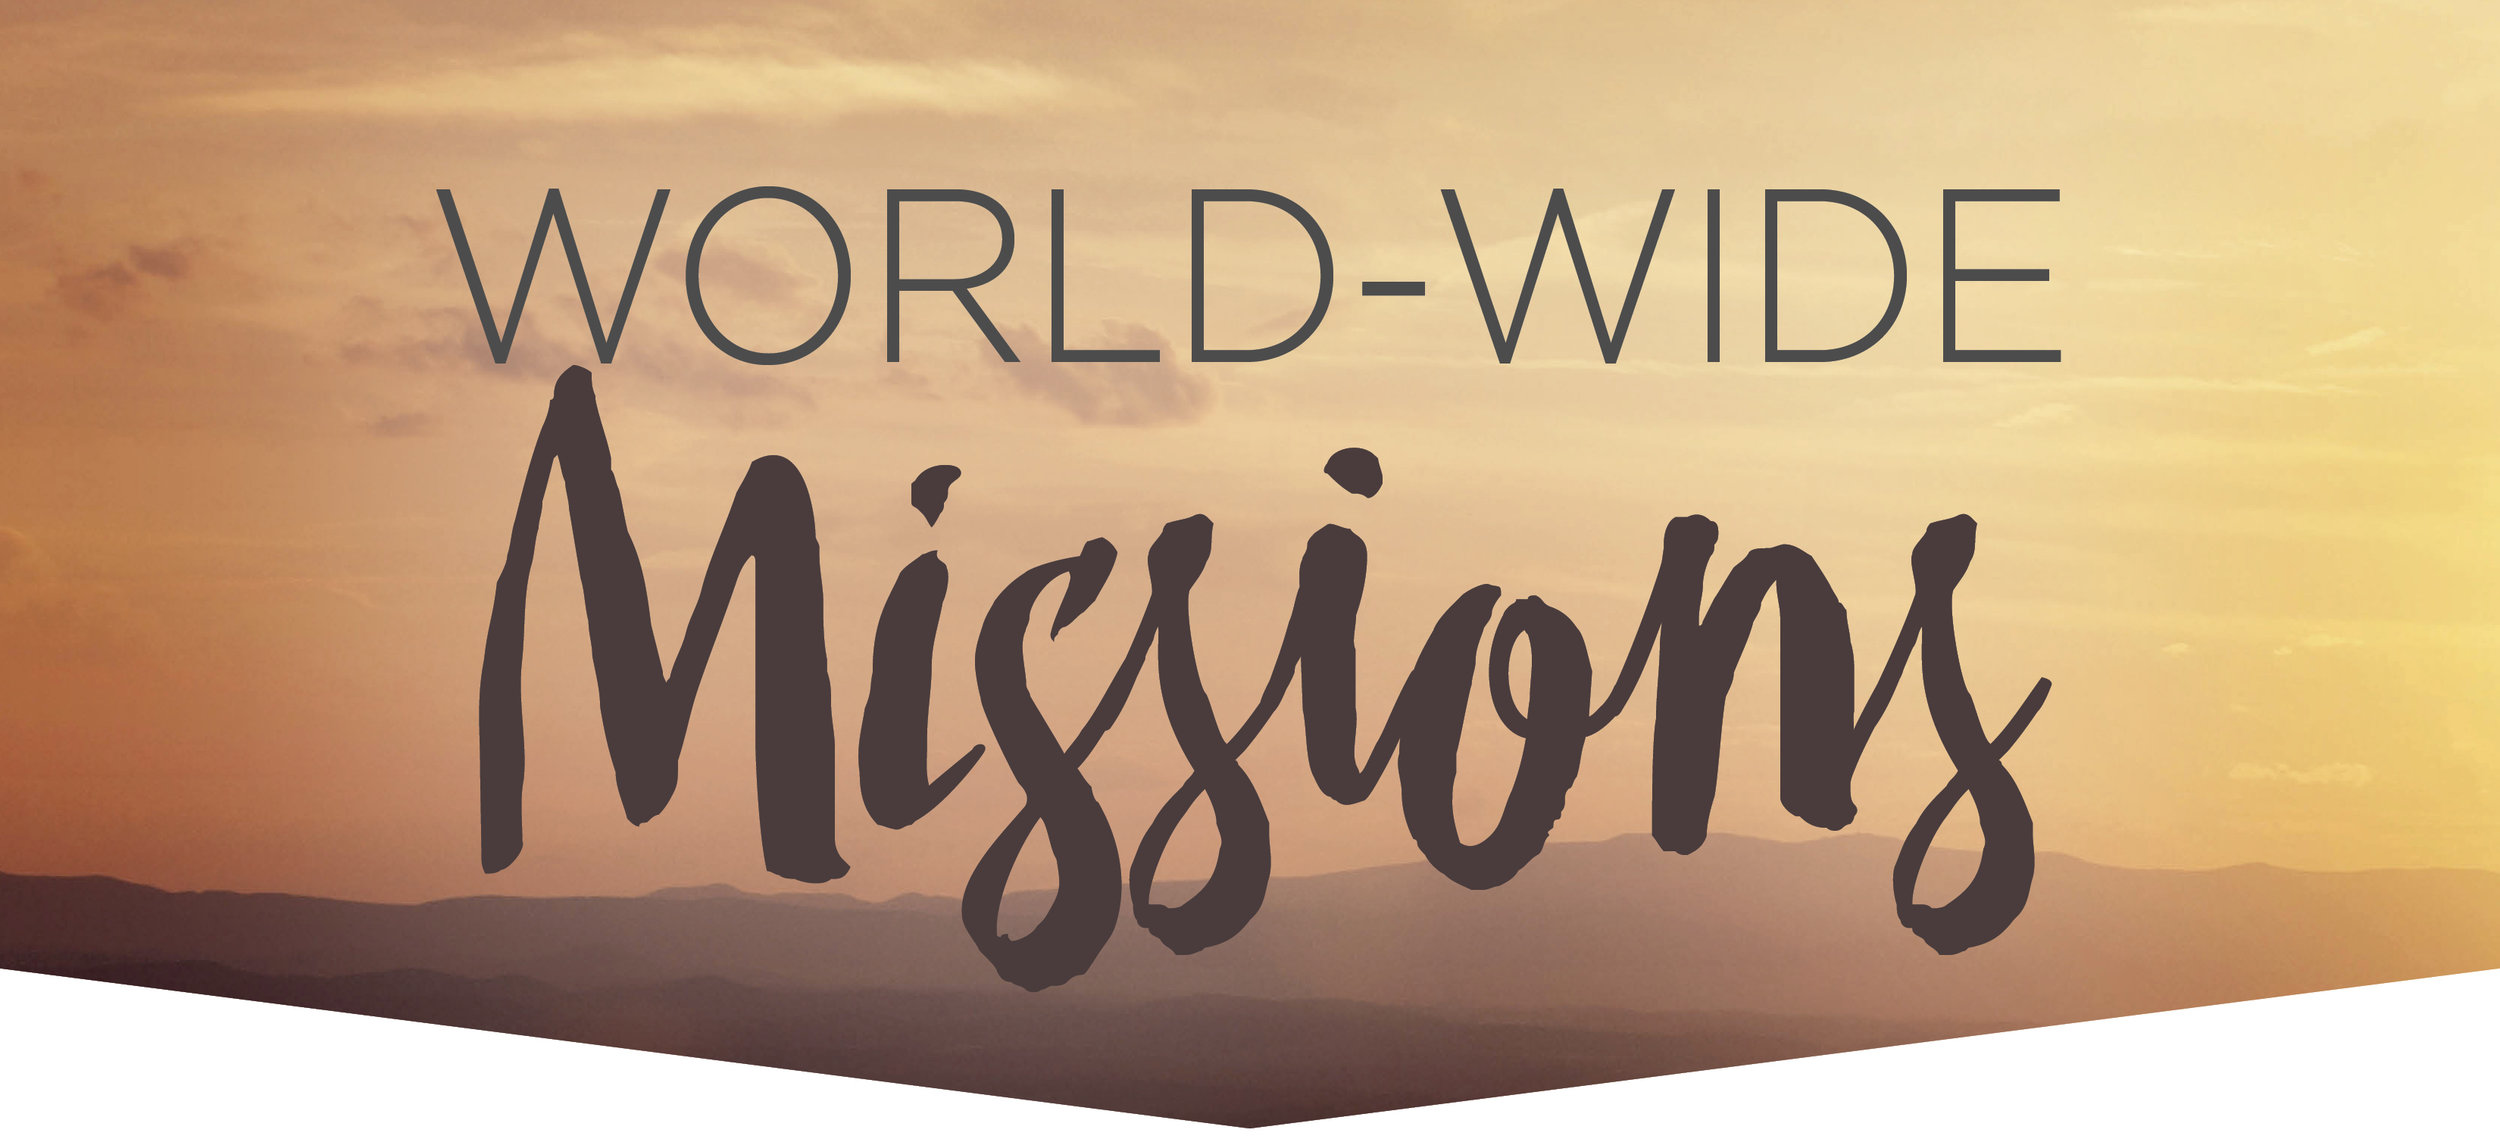 East and World-Wide Missions